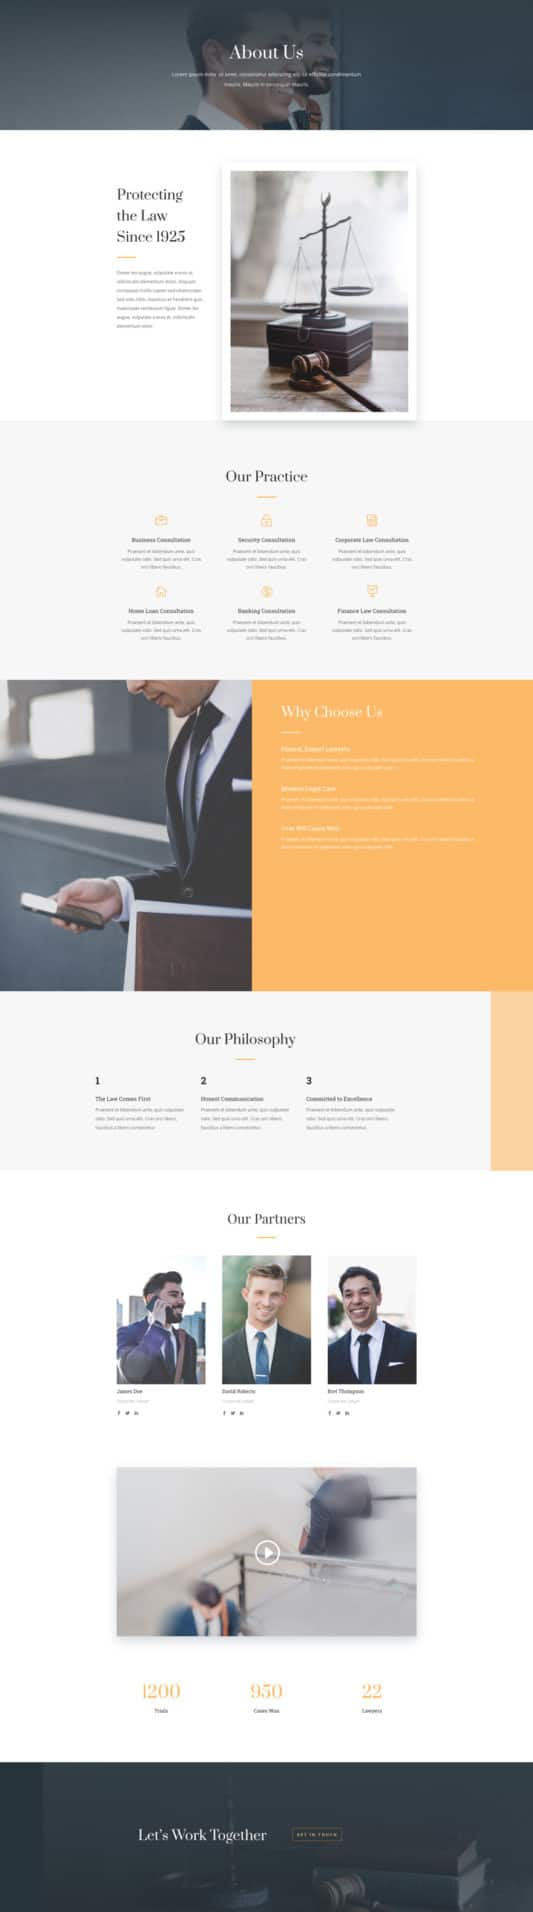 Law Firm Web Design 1